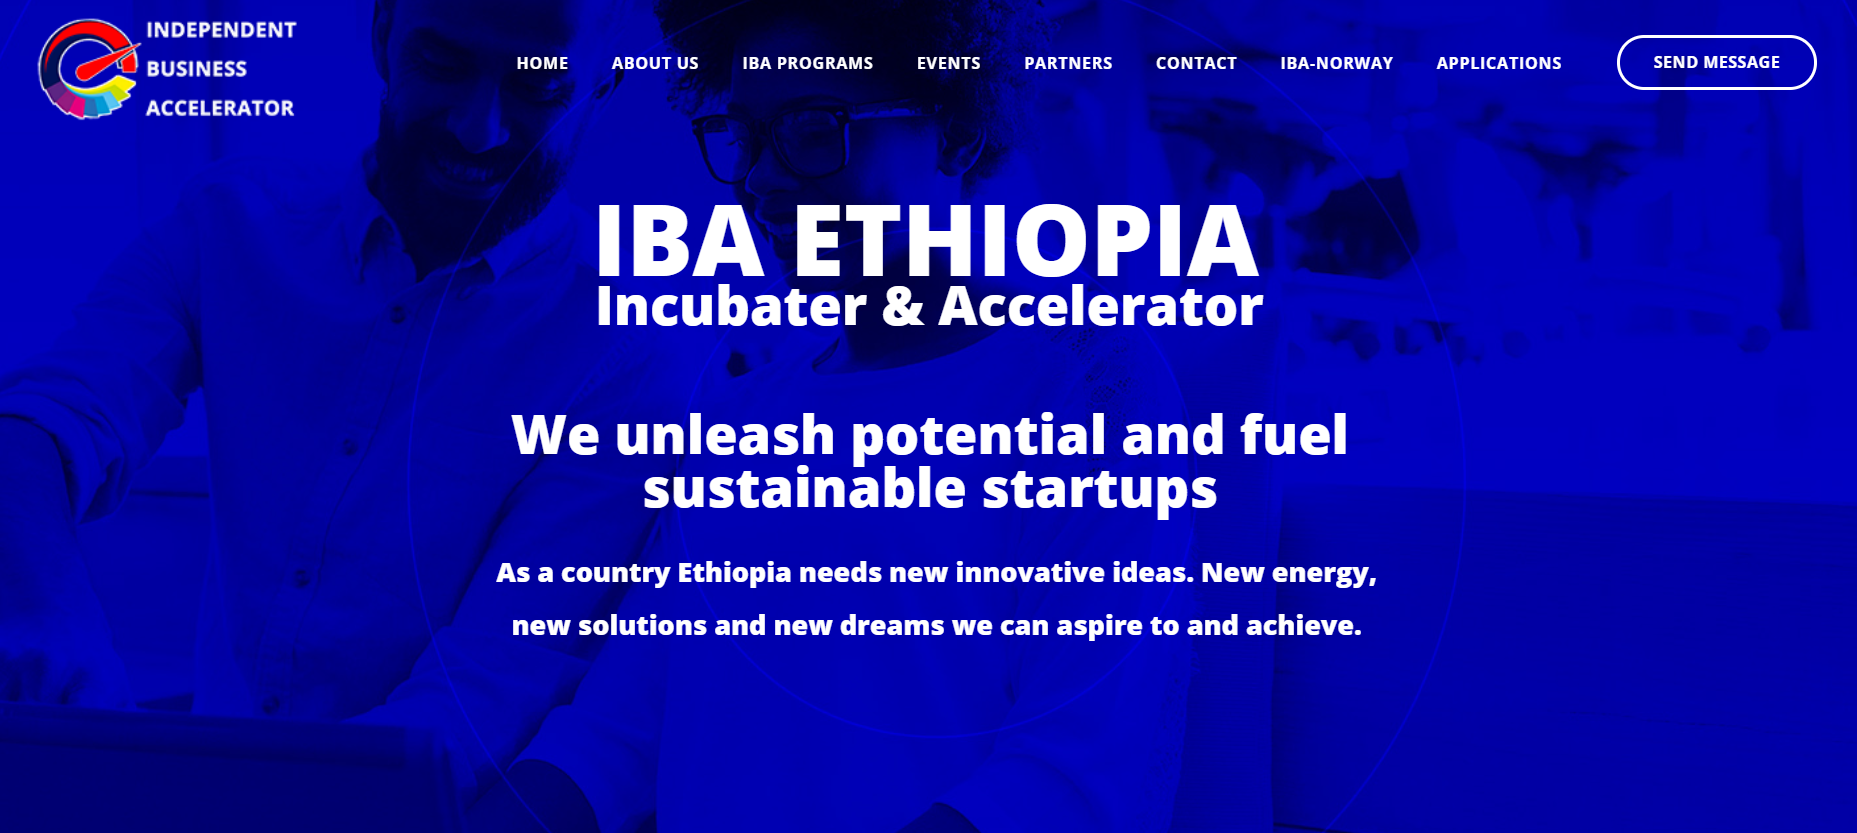 Independent Business Acceletater